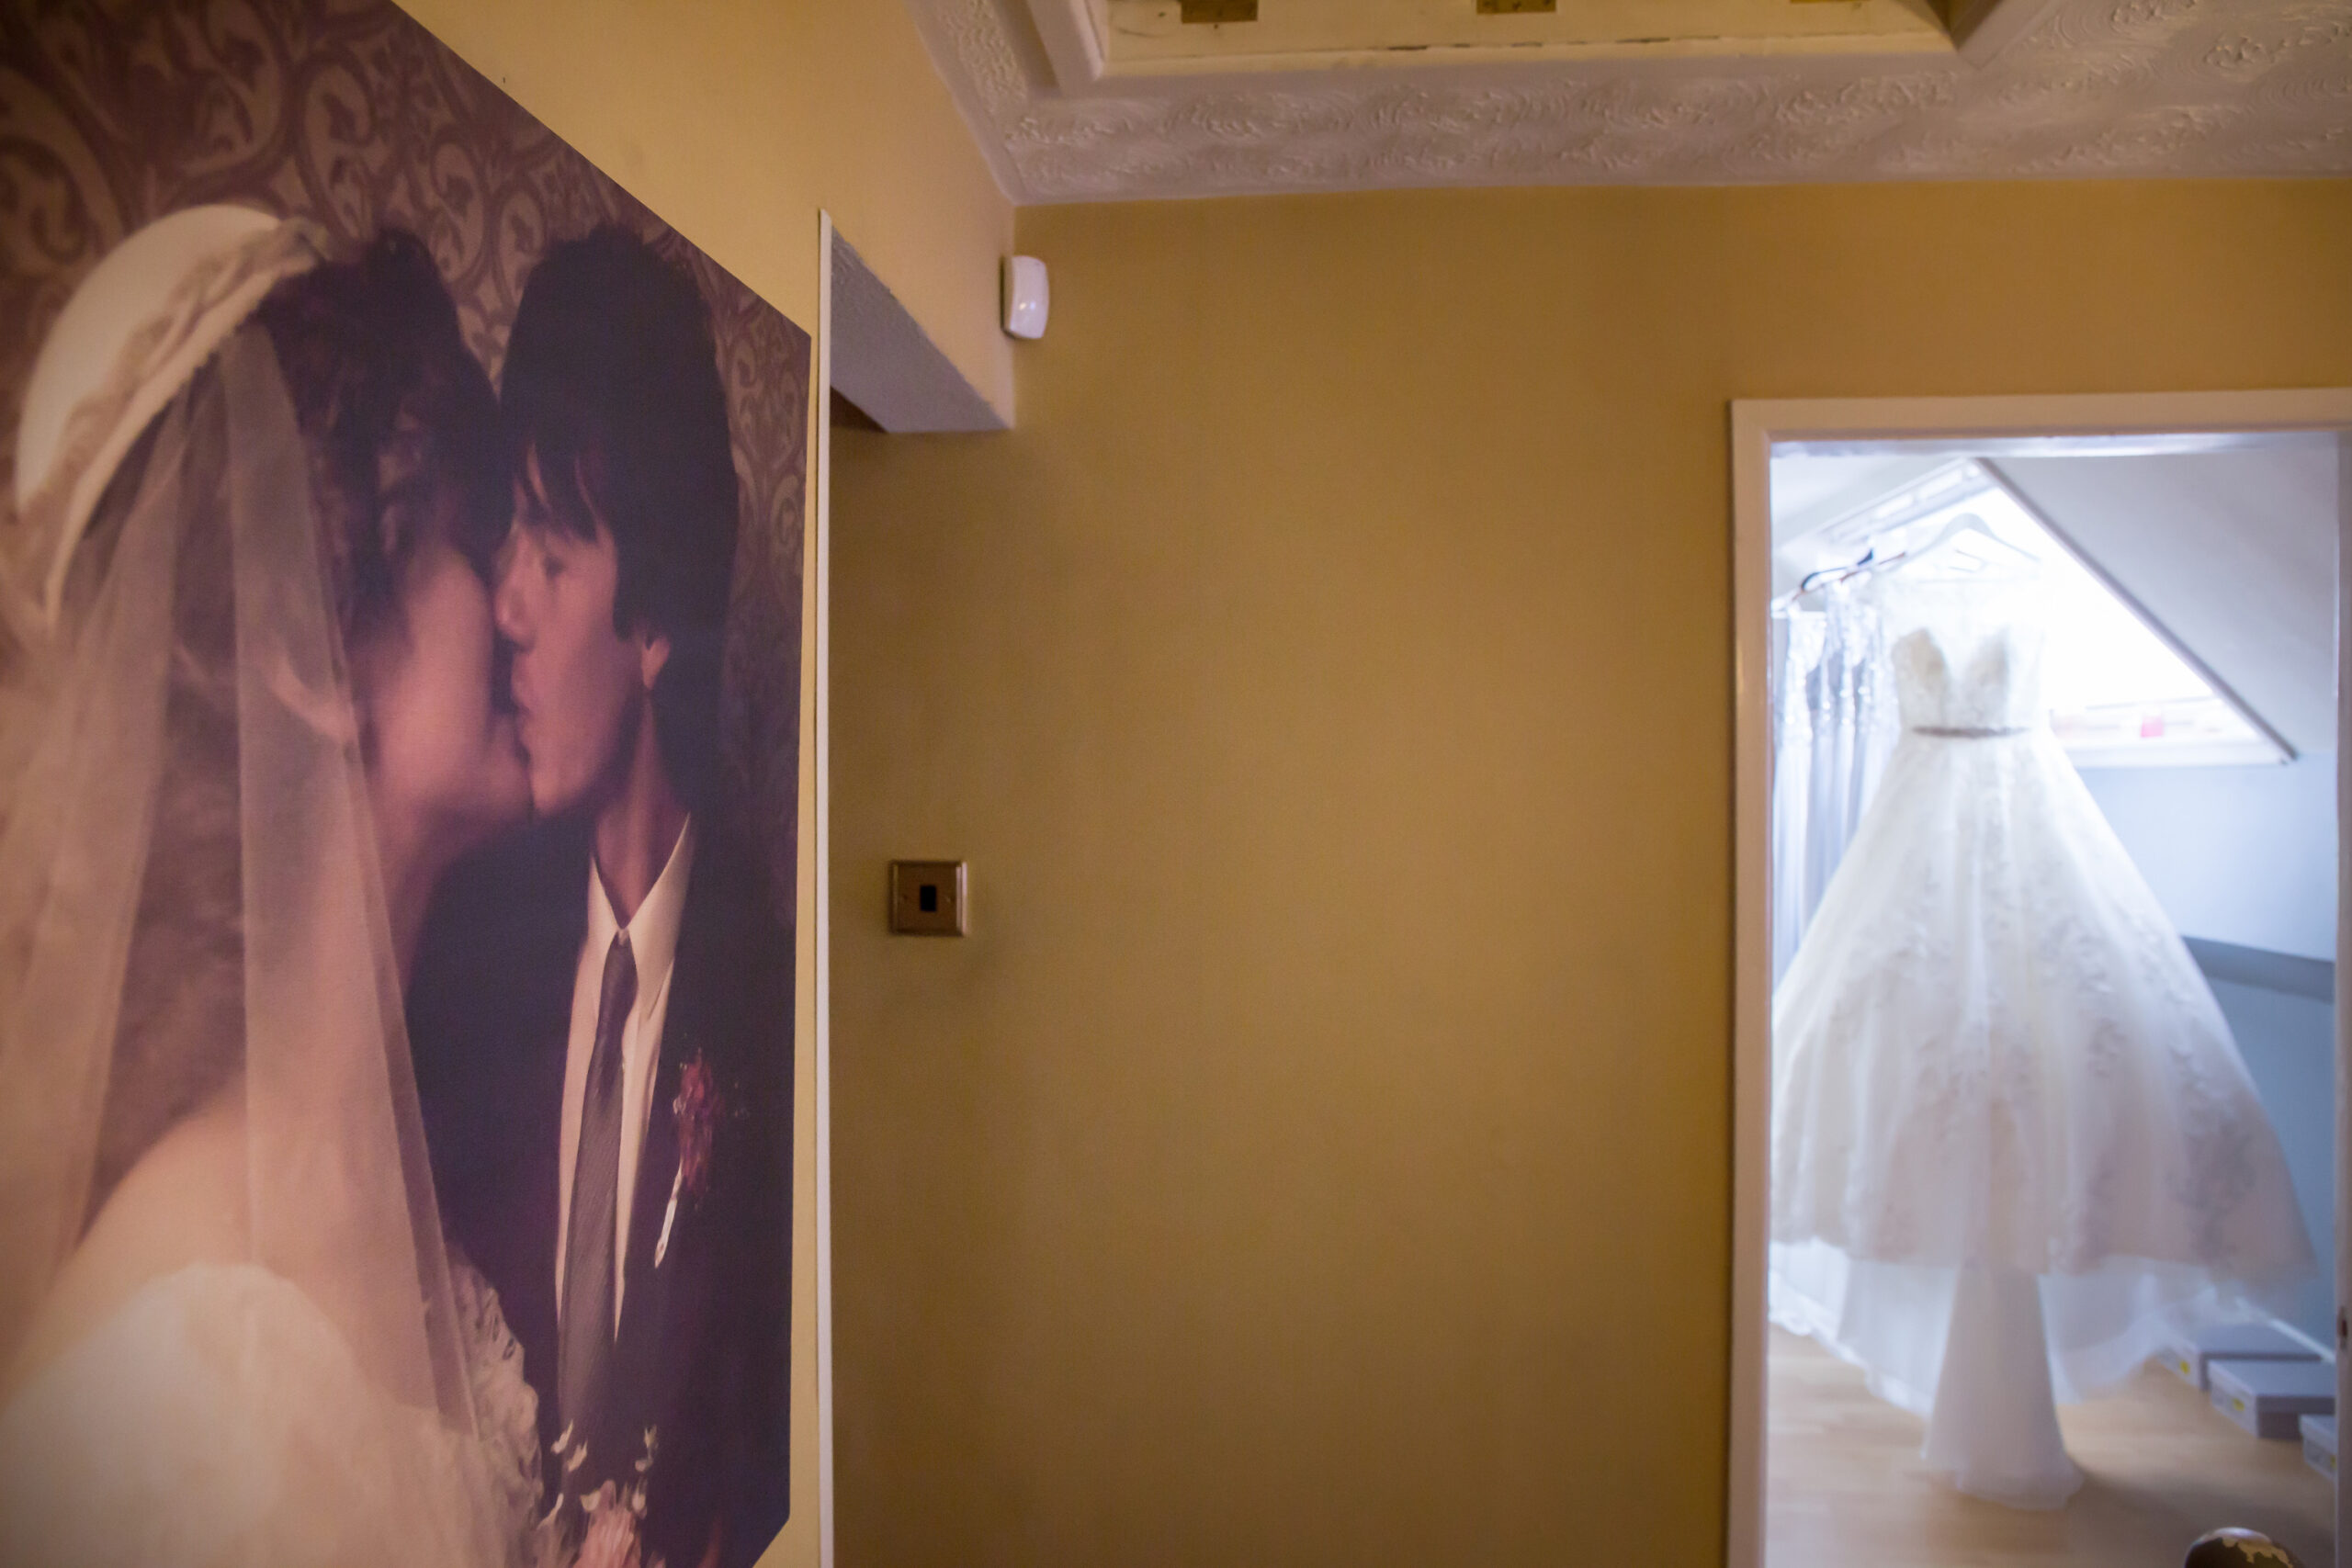 wedding dress hangs in a room with a photo of the mother and father of the bride's wedding day in the hallway